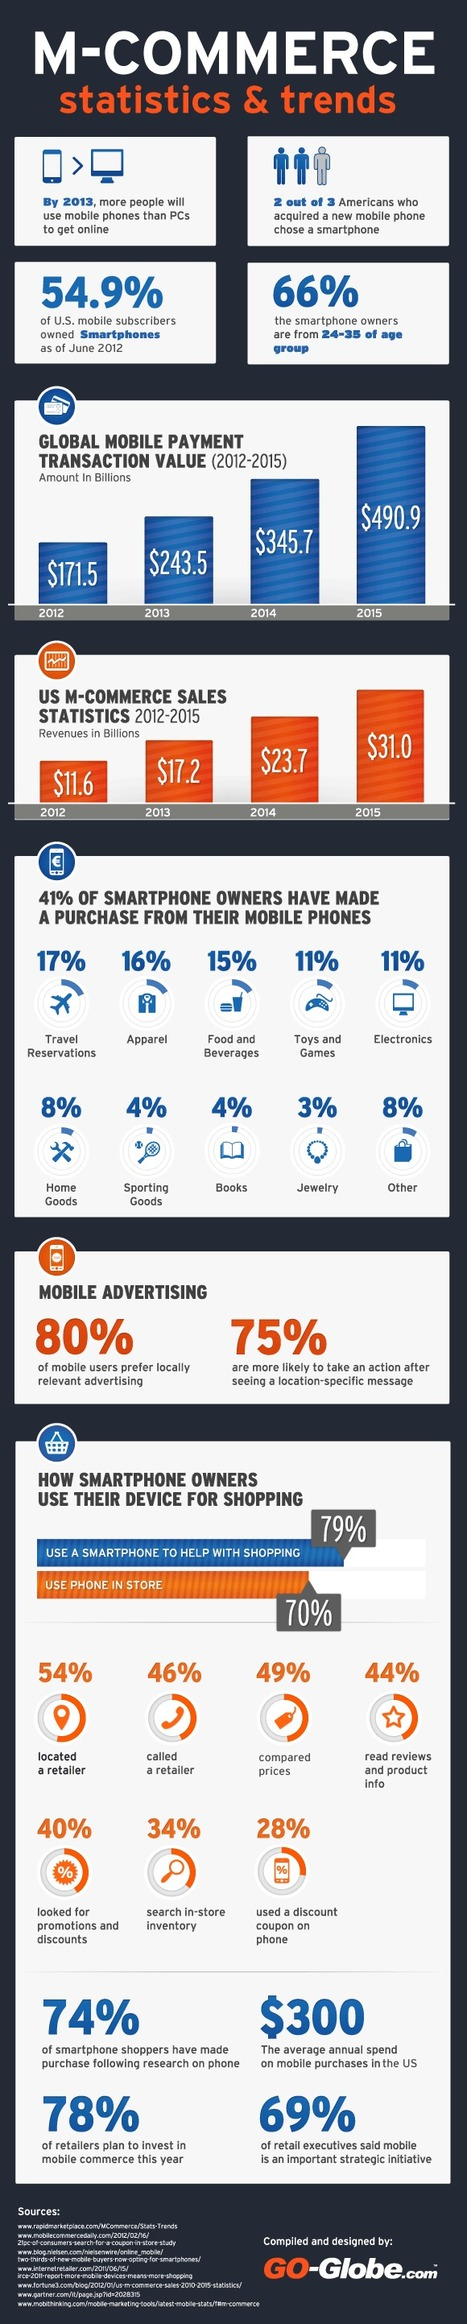 #INFOGRAPHIC: Global #mobile #payments market to hit $490.9bn in 2015 | Integrated Marketing Communications & Digital Planning | Scoop.it